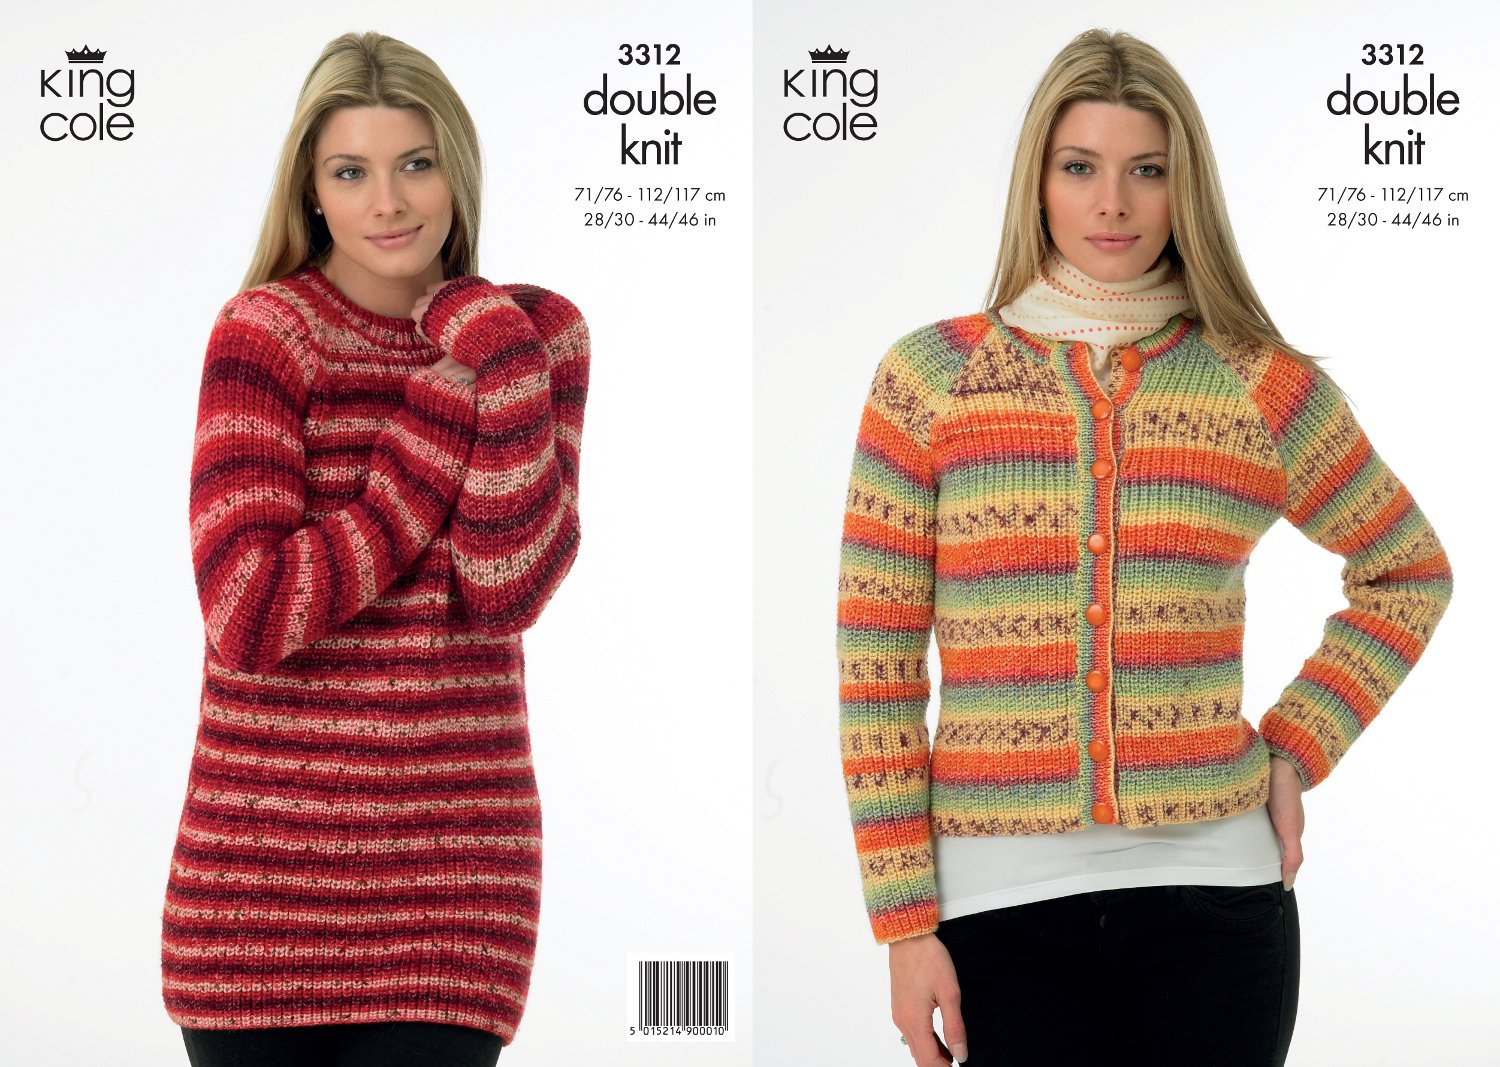 King cole ladies double knitting pattern womens dk knitted sweater king cole ladies double knitting pattern womens dk knitted sweater jacket 3312 amazon kitchen home bankloansurffo Images